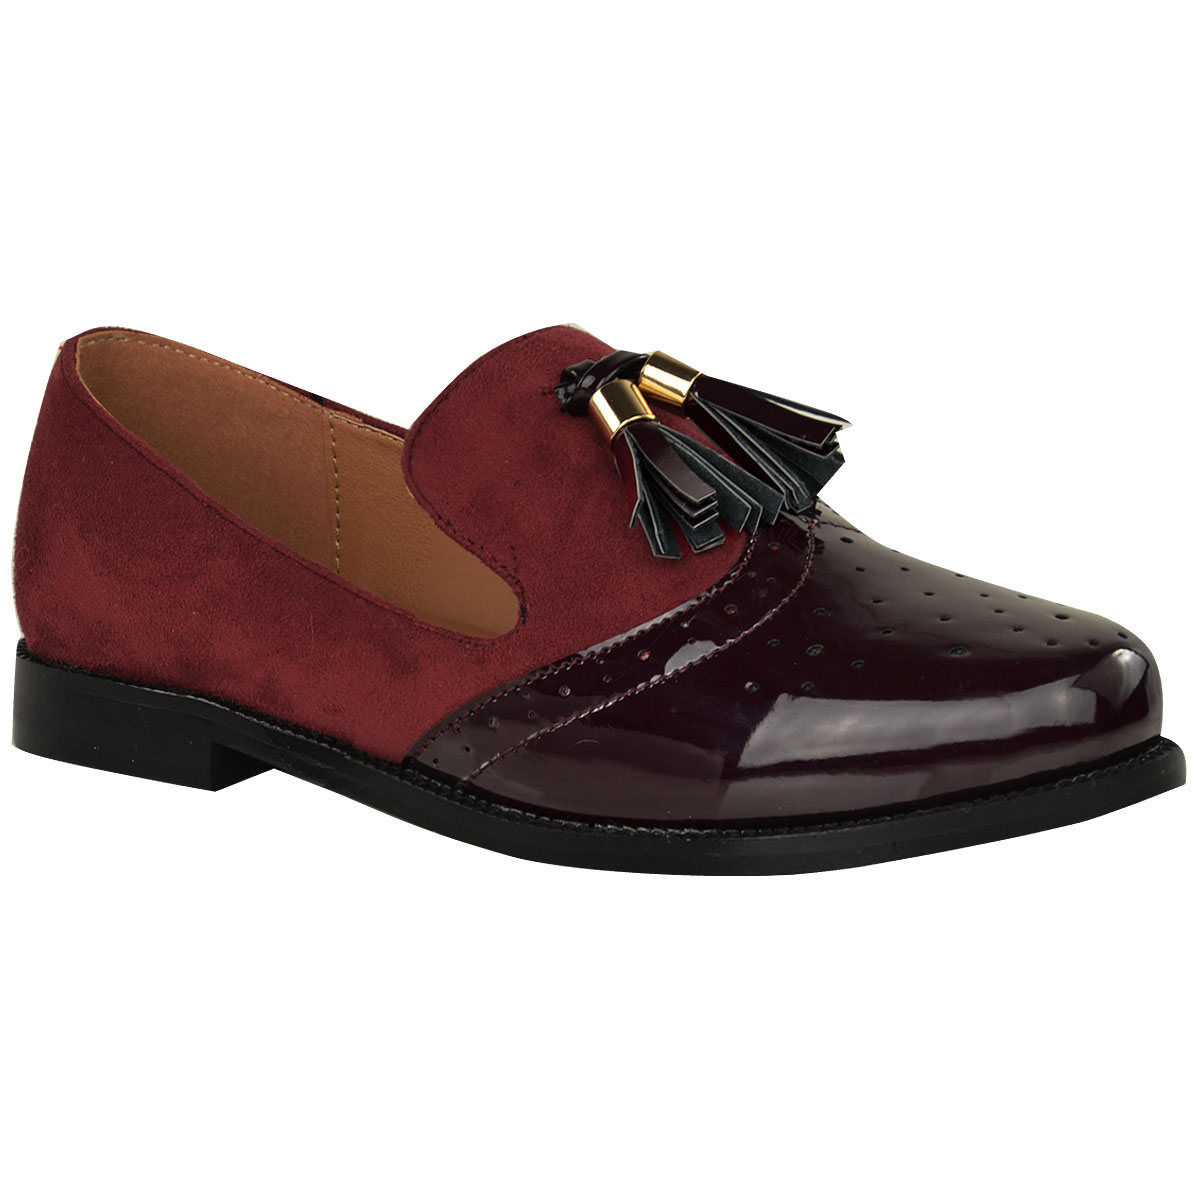 Womens Plaid Oxford Shoes Casual